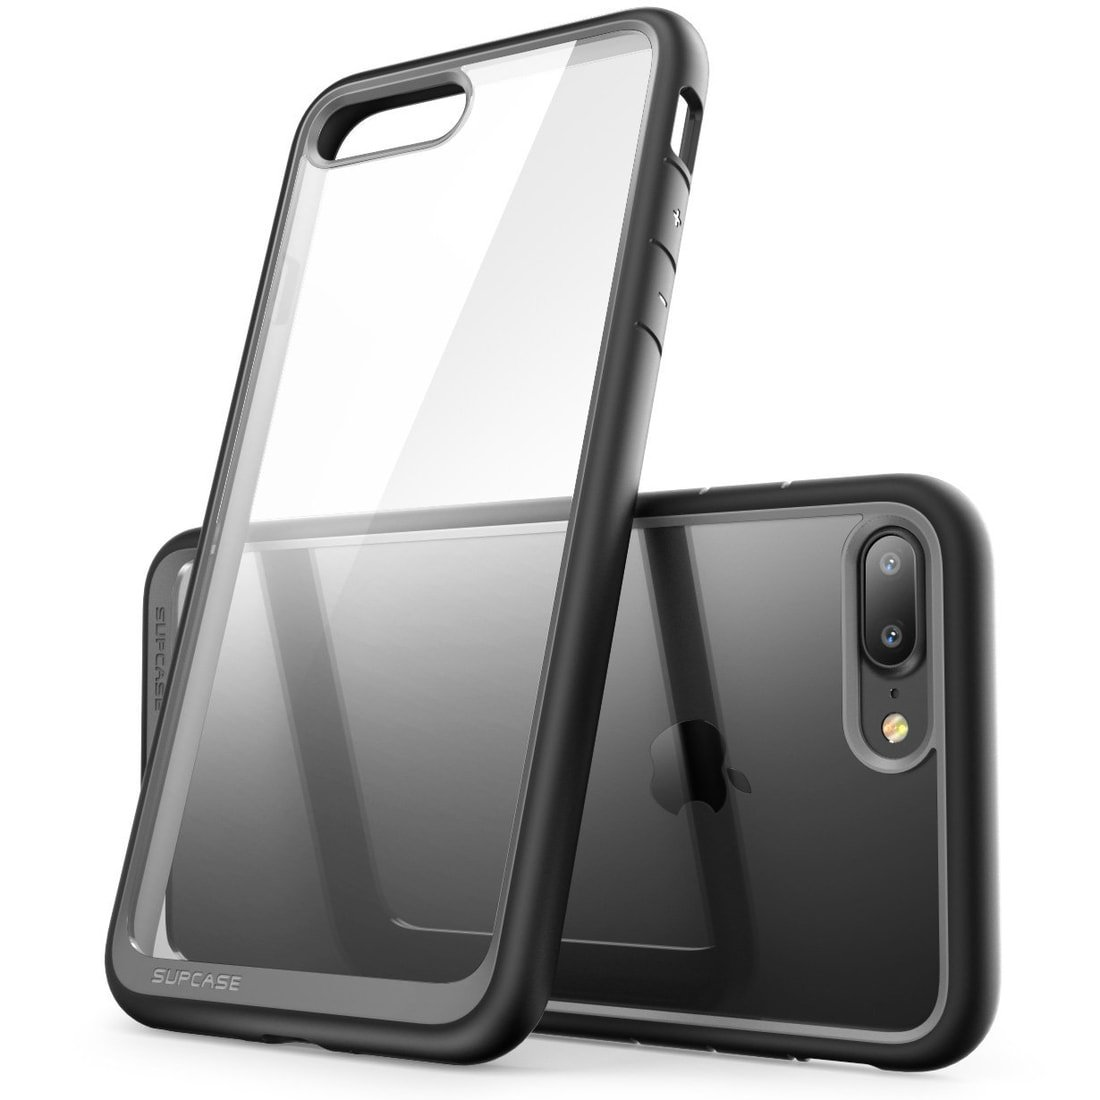 Top 5 Best Apple iPhone 8 Plus Cases Covers